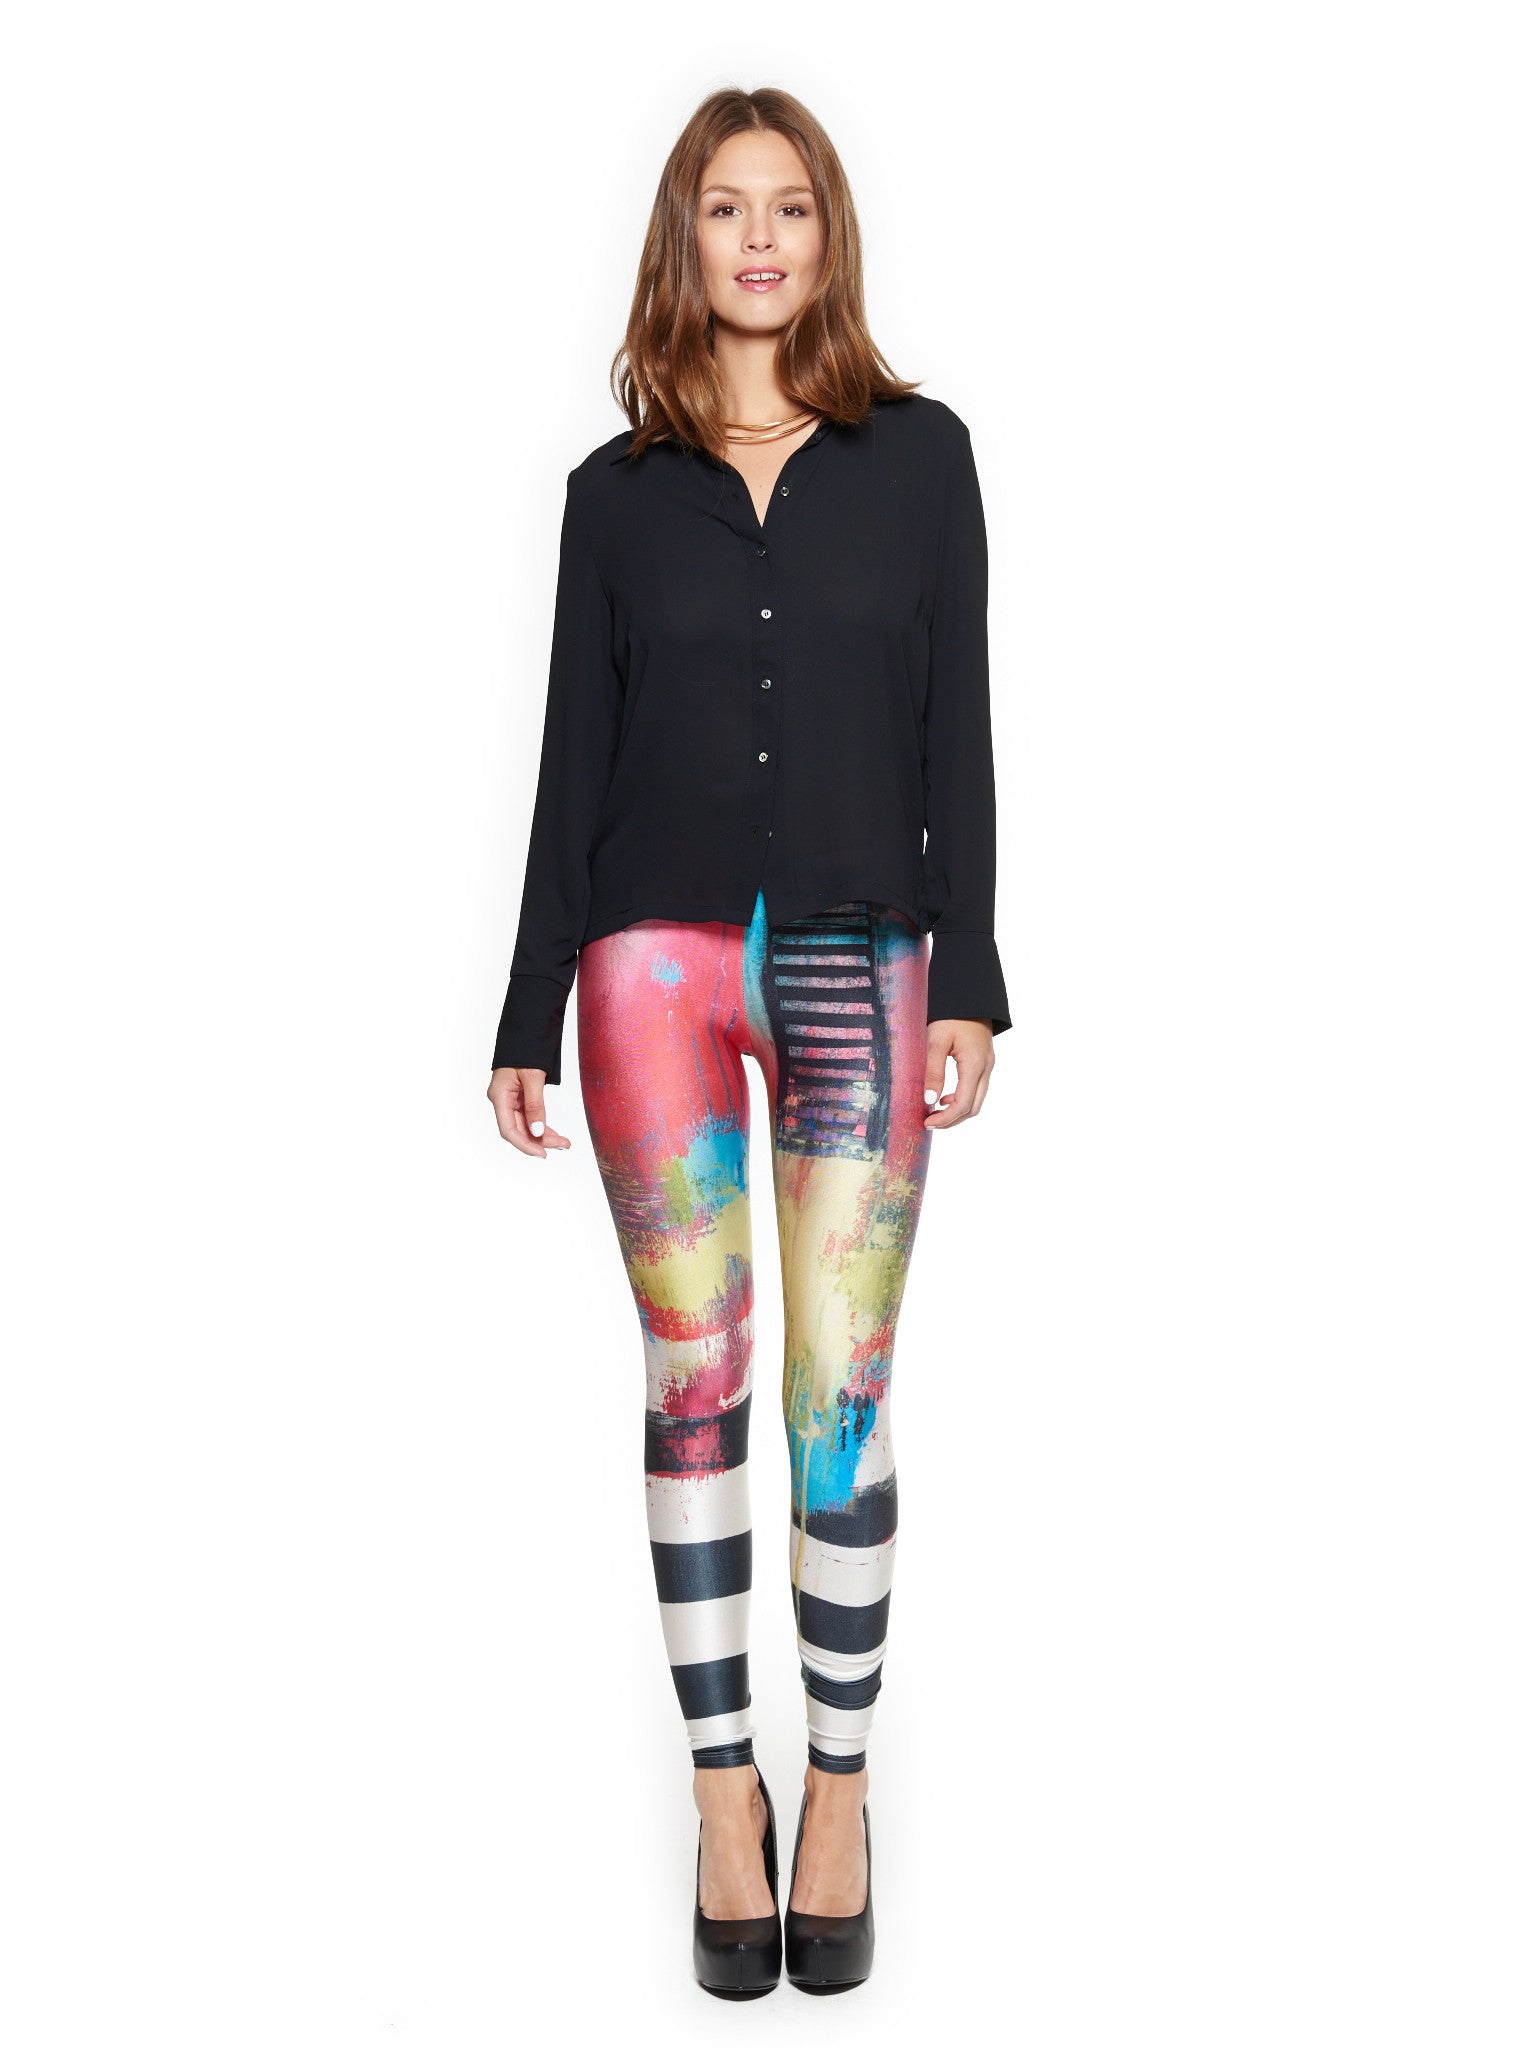 Say Something Queen West Leggings - Nuvango  - 1